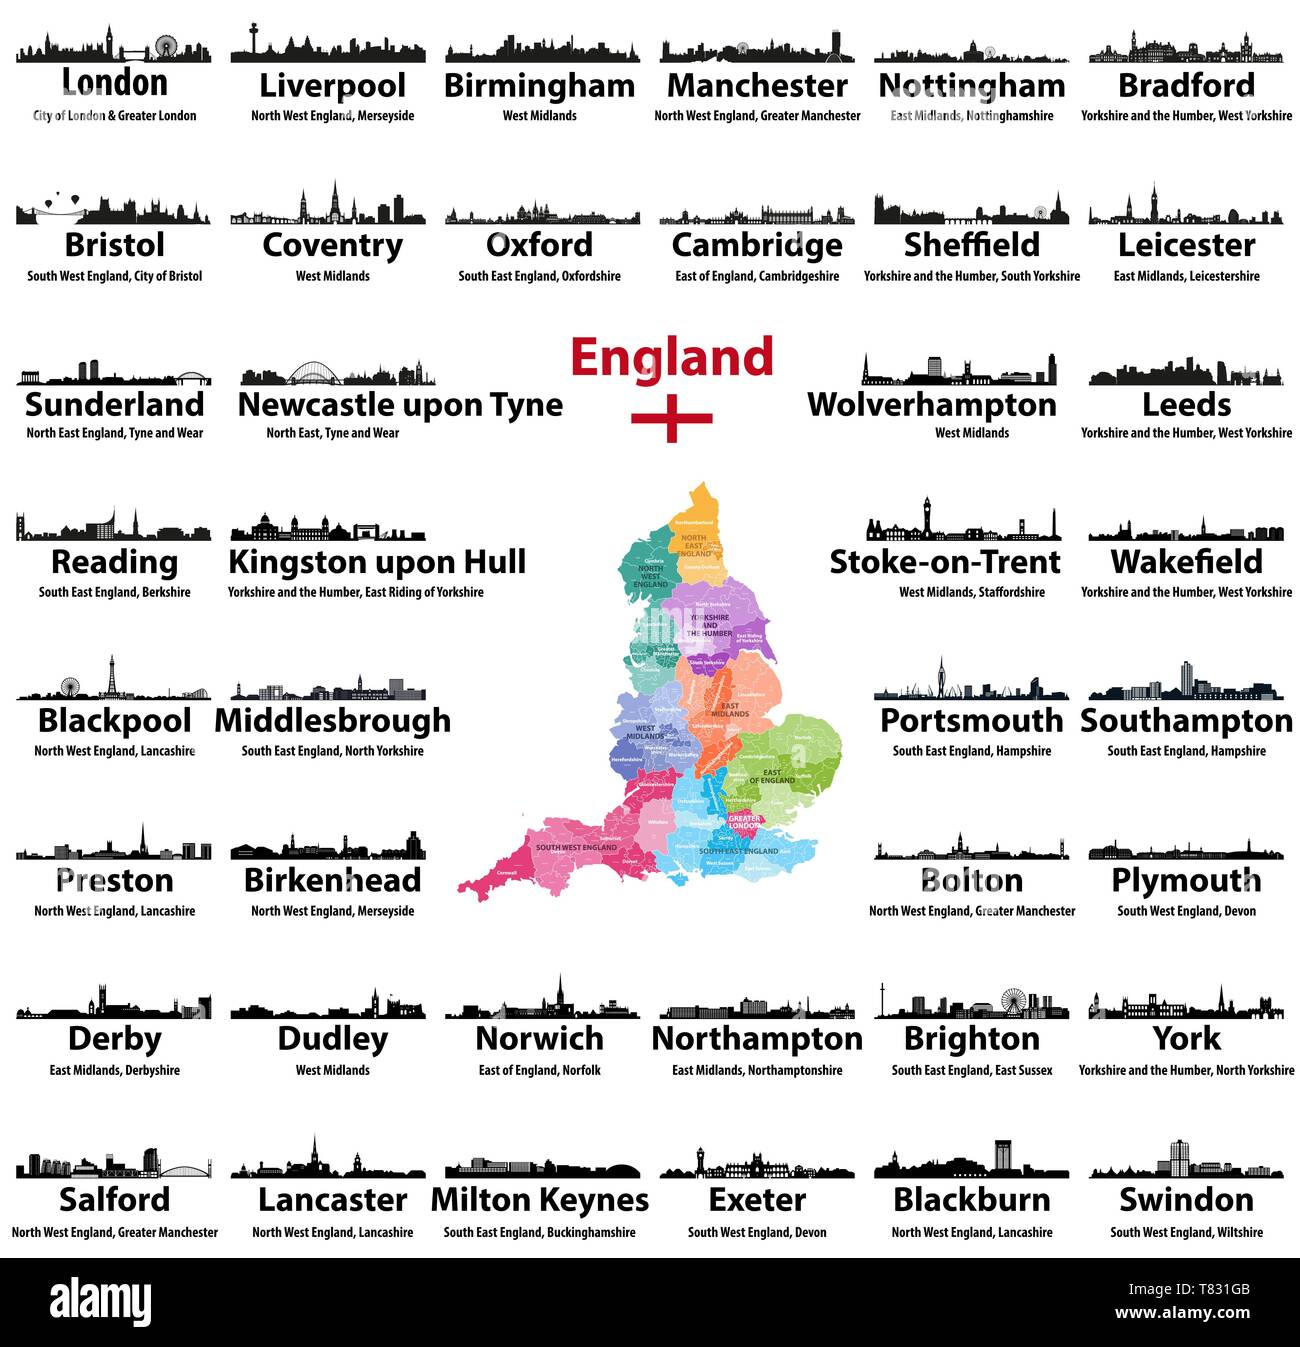 England map and cities skylines with names of city, region and ceremonial county - Stock Vector